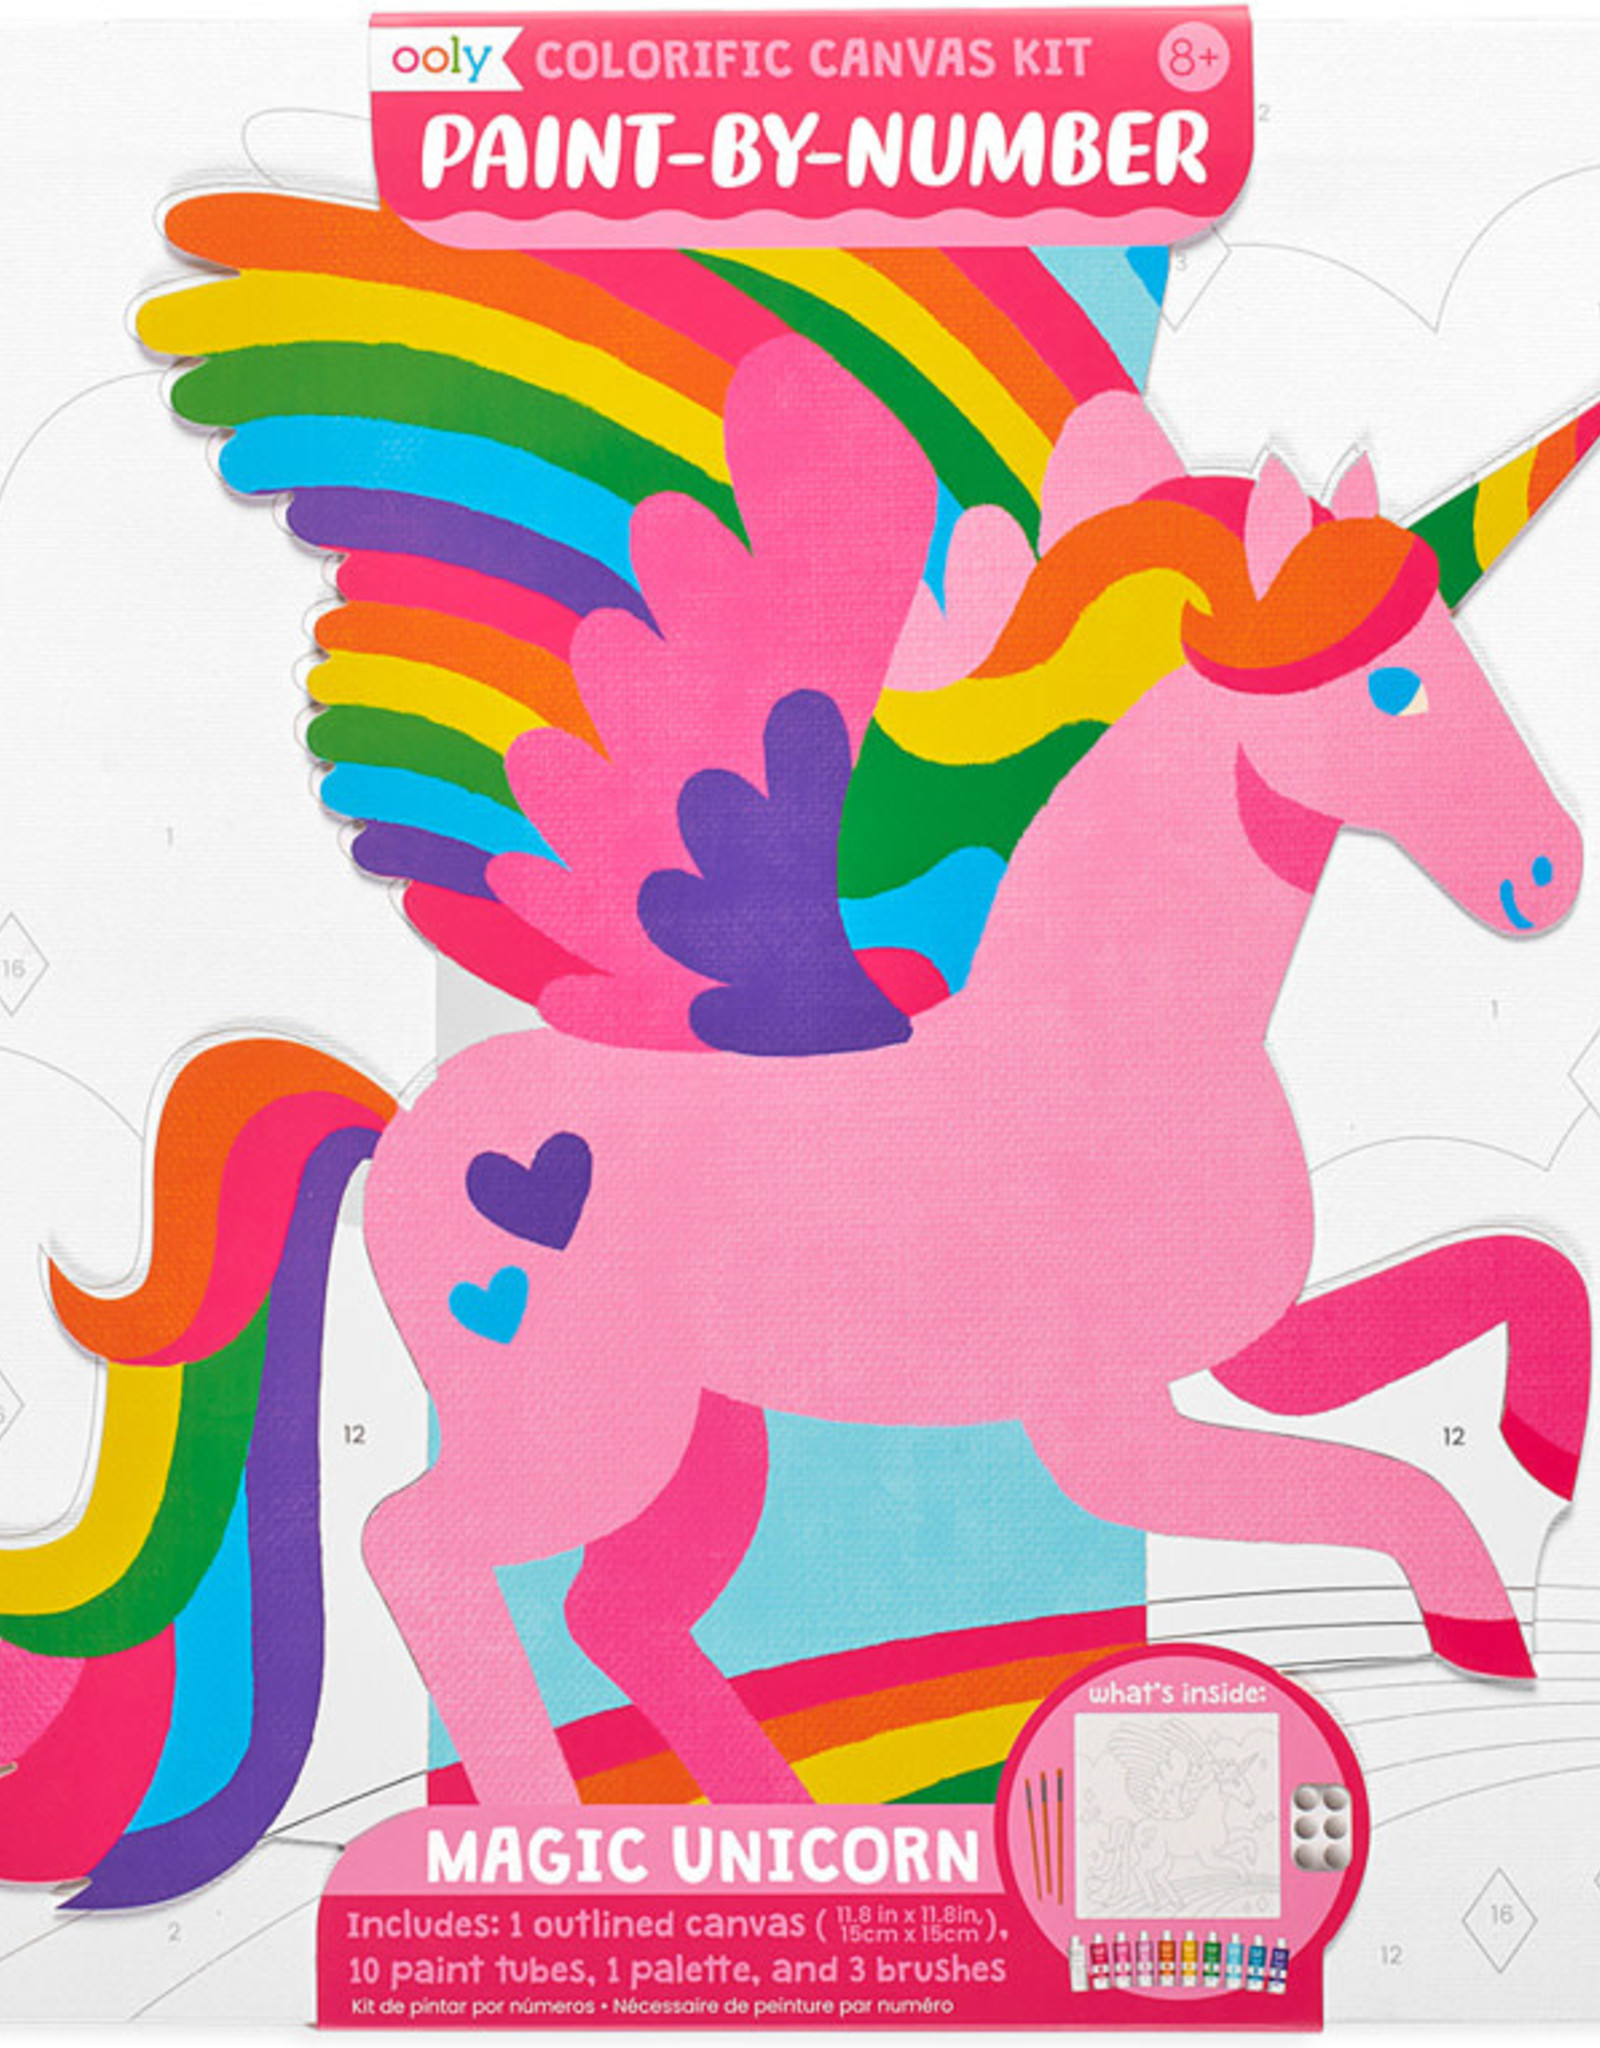 Ooly Colorific Canvas Kit Paint by Number - Magic Unicorn